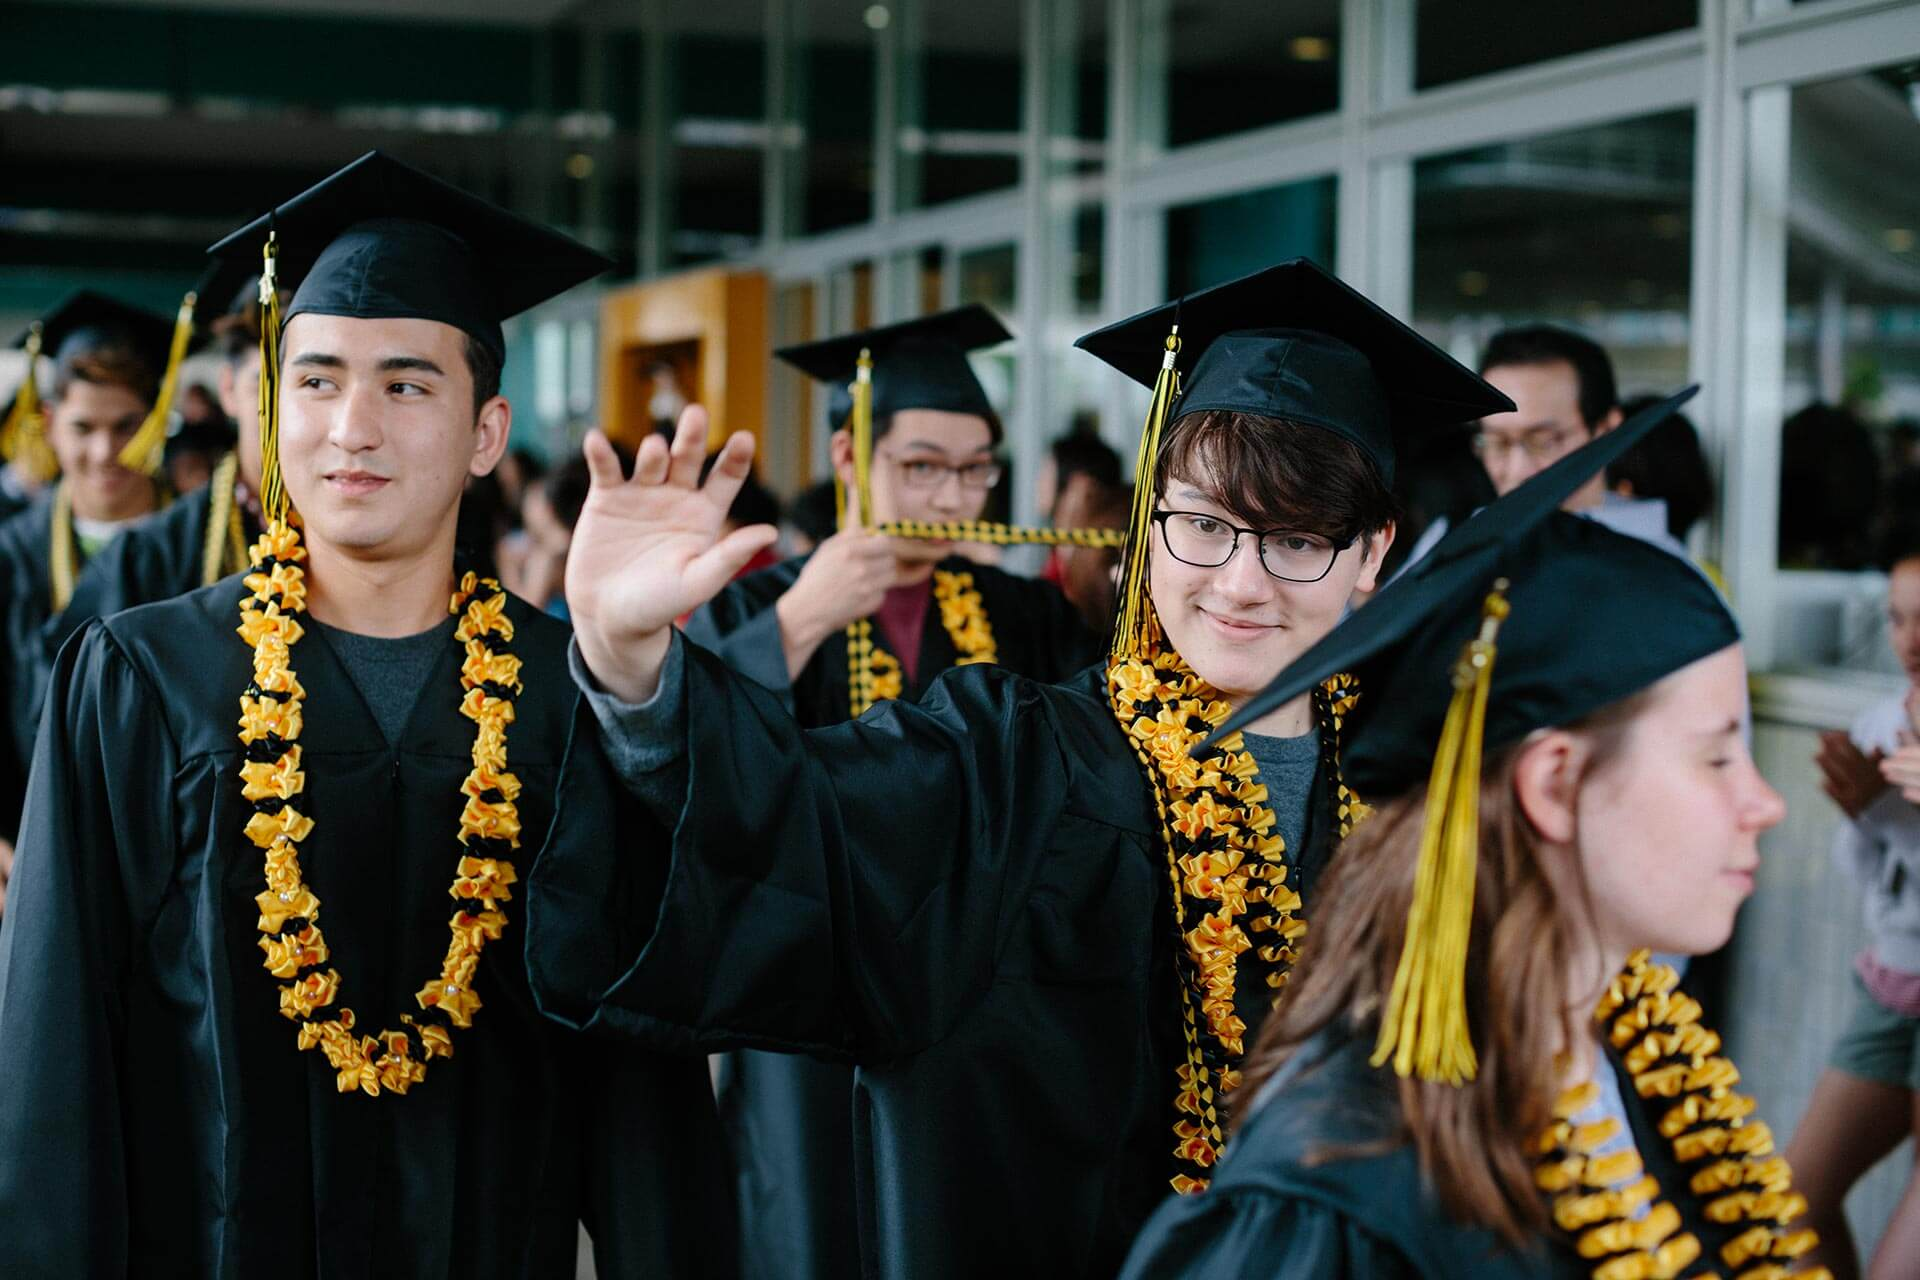 A High School Student in Cap and Gown Waves During the Senior Walk